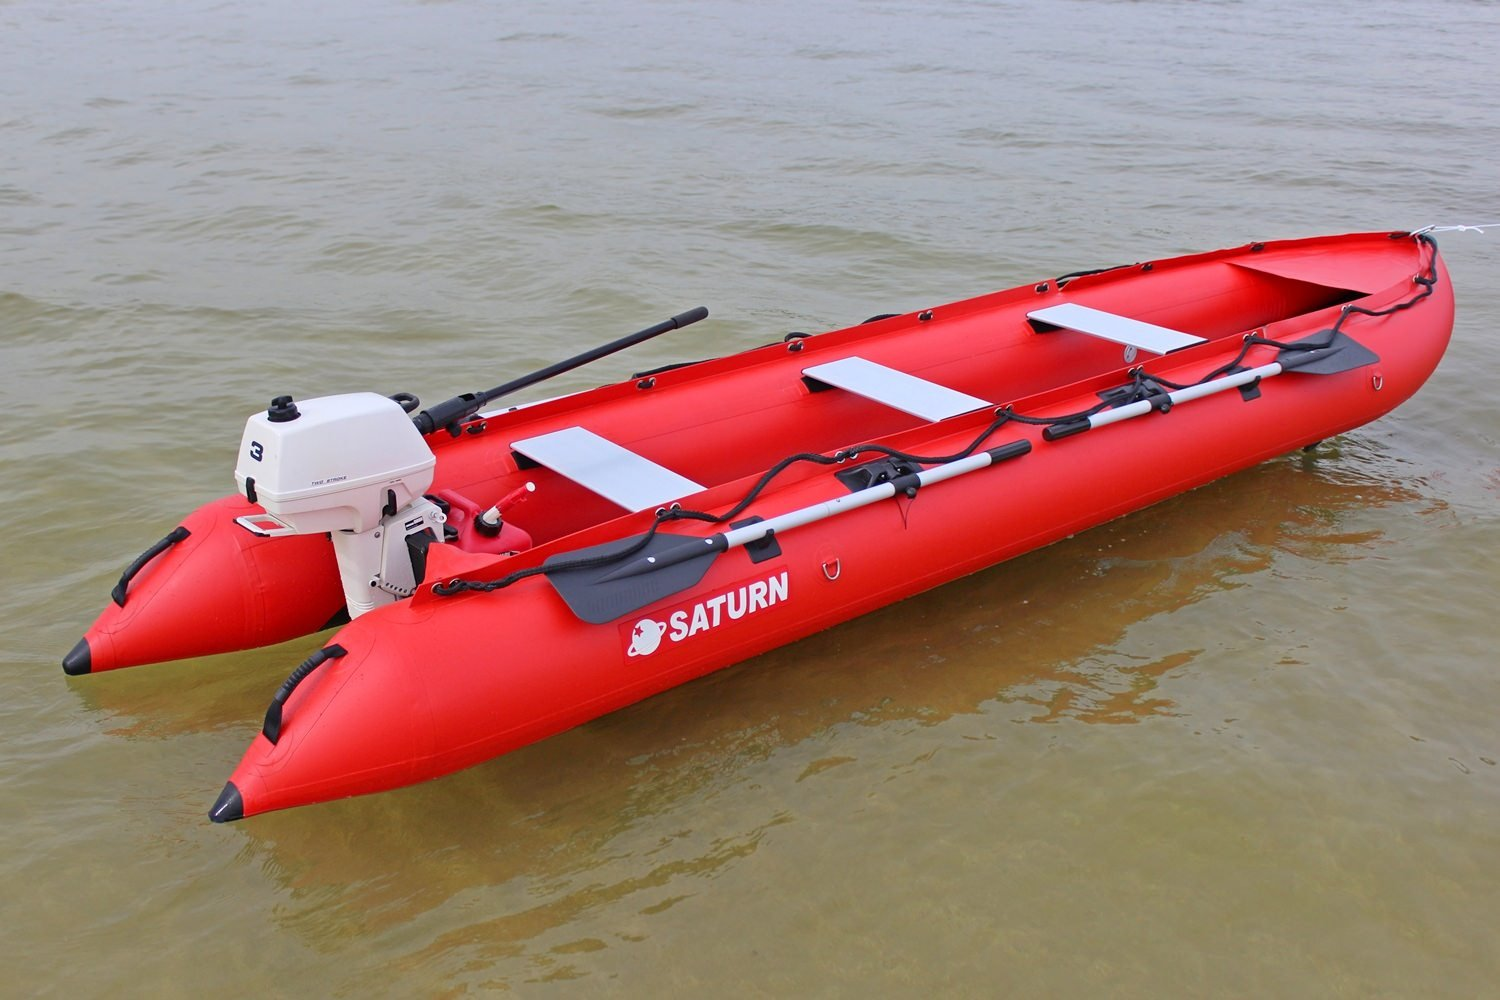 Saturn 15 ft KaBoat SK470 Inflatable Boat and Inflatable Kayak Crossover -  Red  Dinghy Tender Raft Inflatable Motor Speed Boat  Narrow fast boat